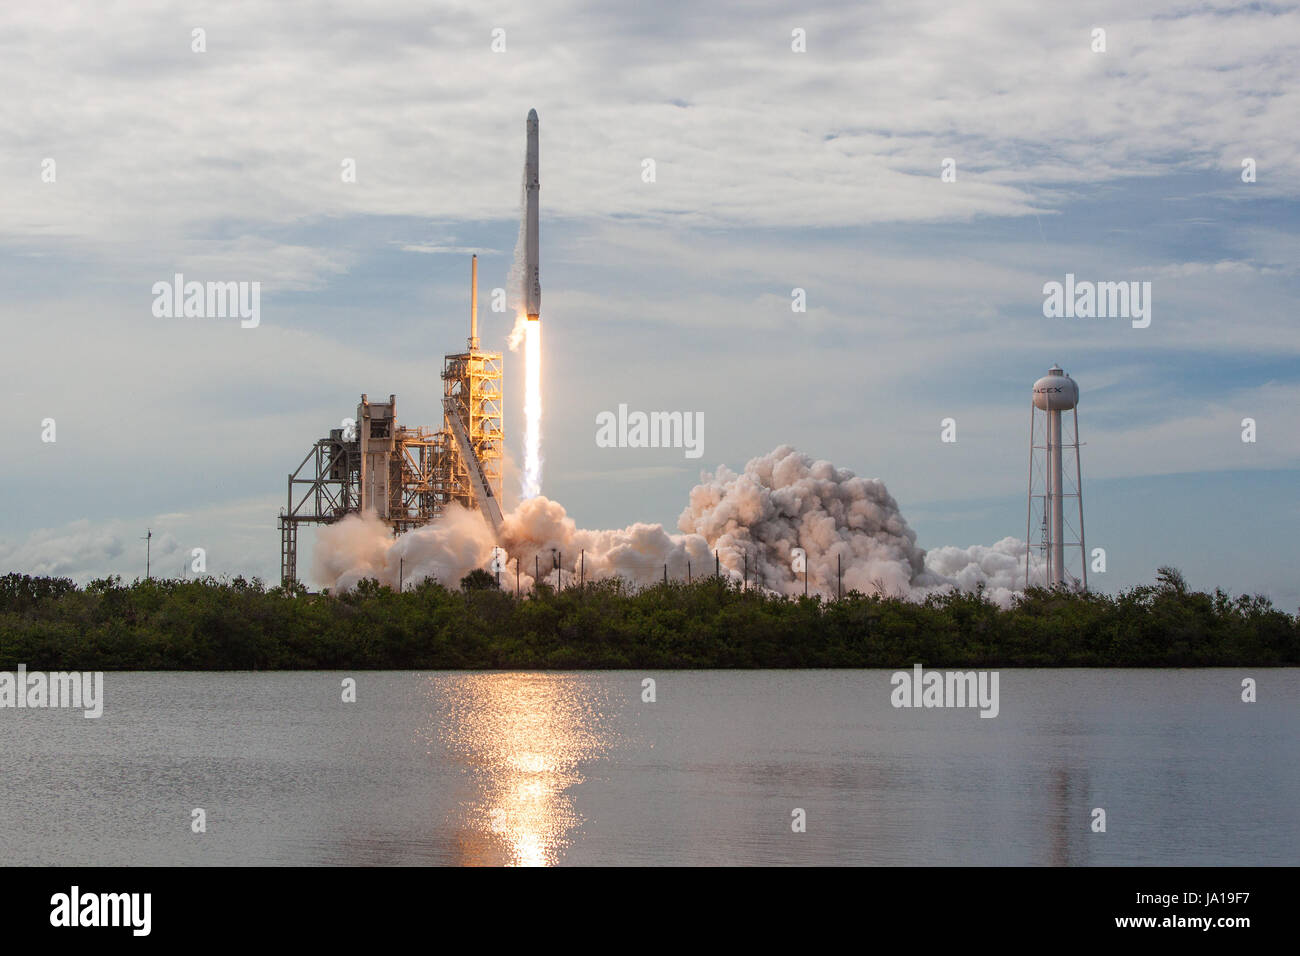 Cape Canaveral, Florida, USA. 3rd June, 2017. The photo made available by U.S. space firm SpaceX on June 3, 2017 - Stock Image